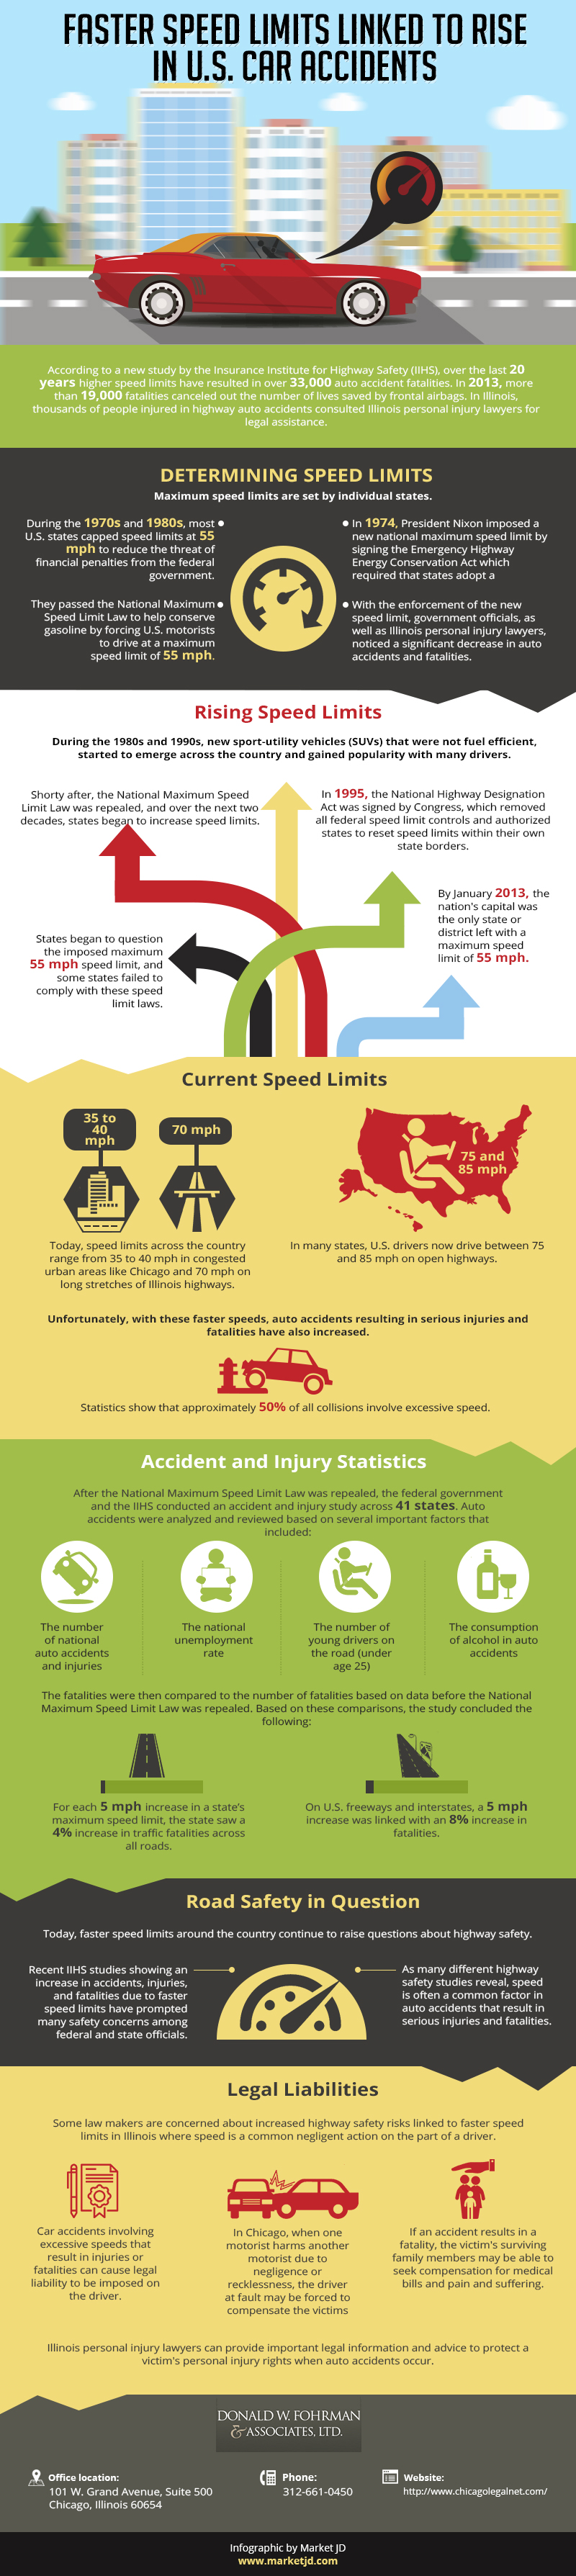 Faster Speed Limits Linked to Rise in U.S. Car Accidents